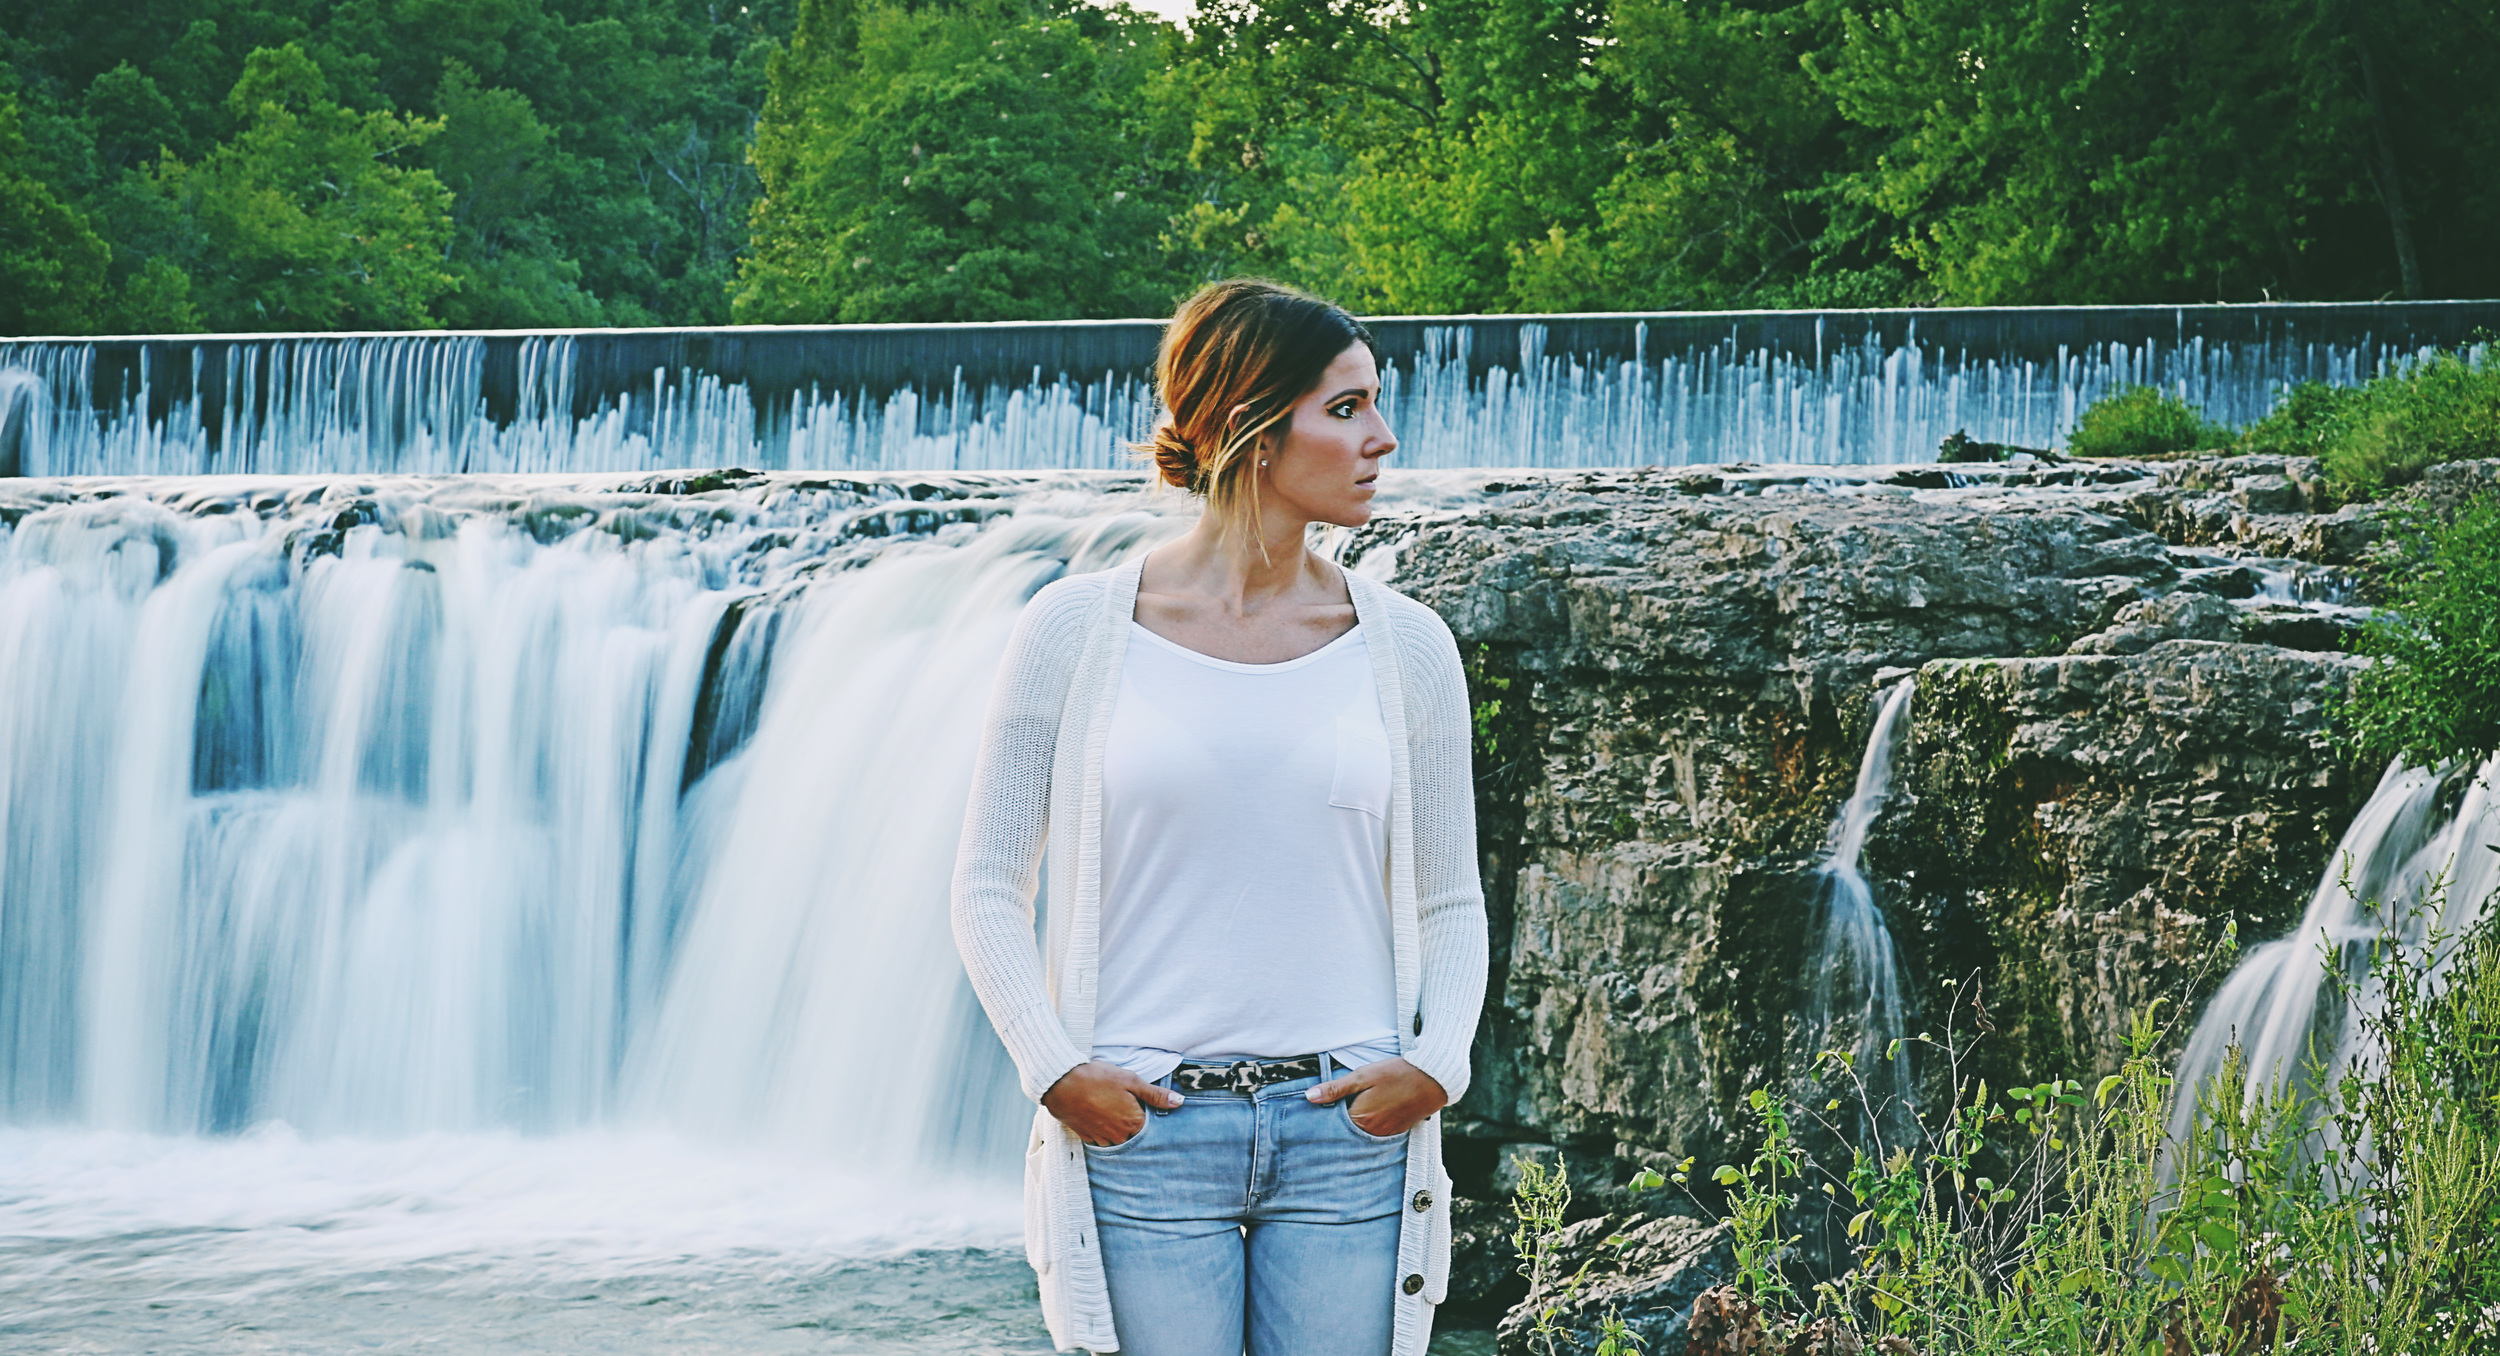 I'm so very proud of this girl! We were out at the falls the other night for a photo shoot and while we were waiting on a customer she wanted me to take a couple shots of her for her new fashion blog. A guy couldn't ask for a better girlfriend and assistant!